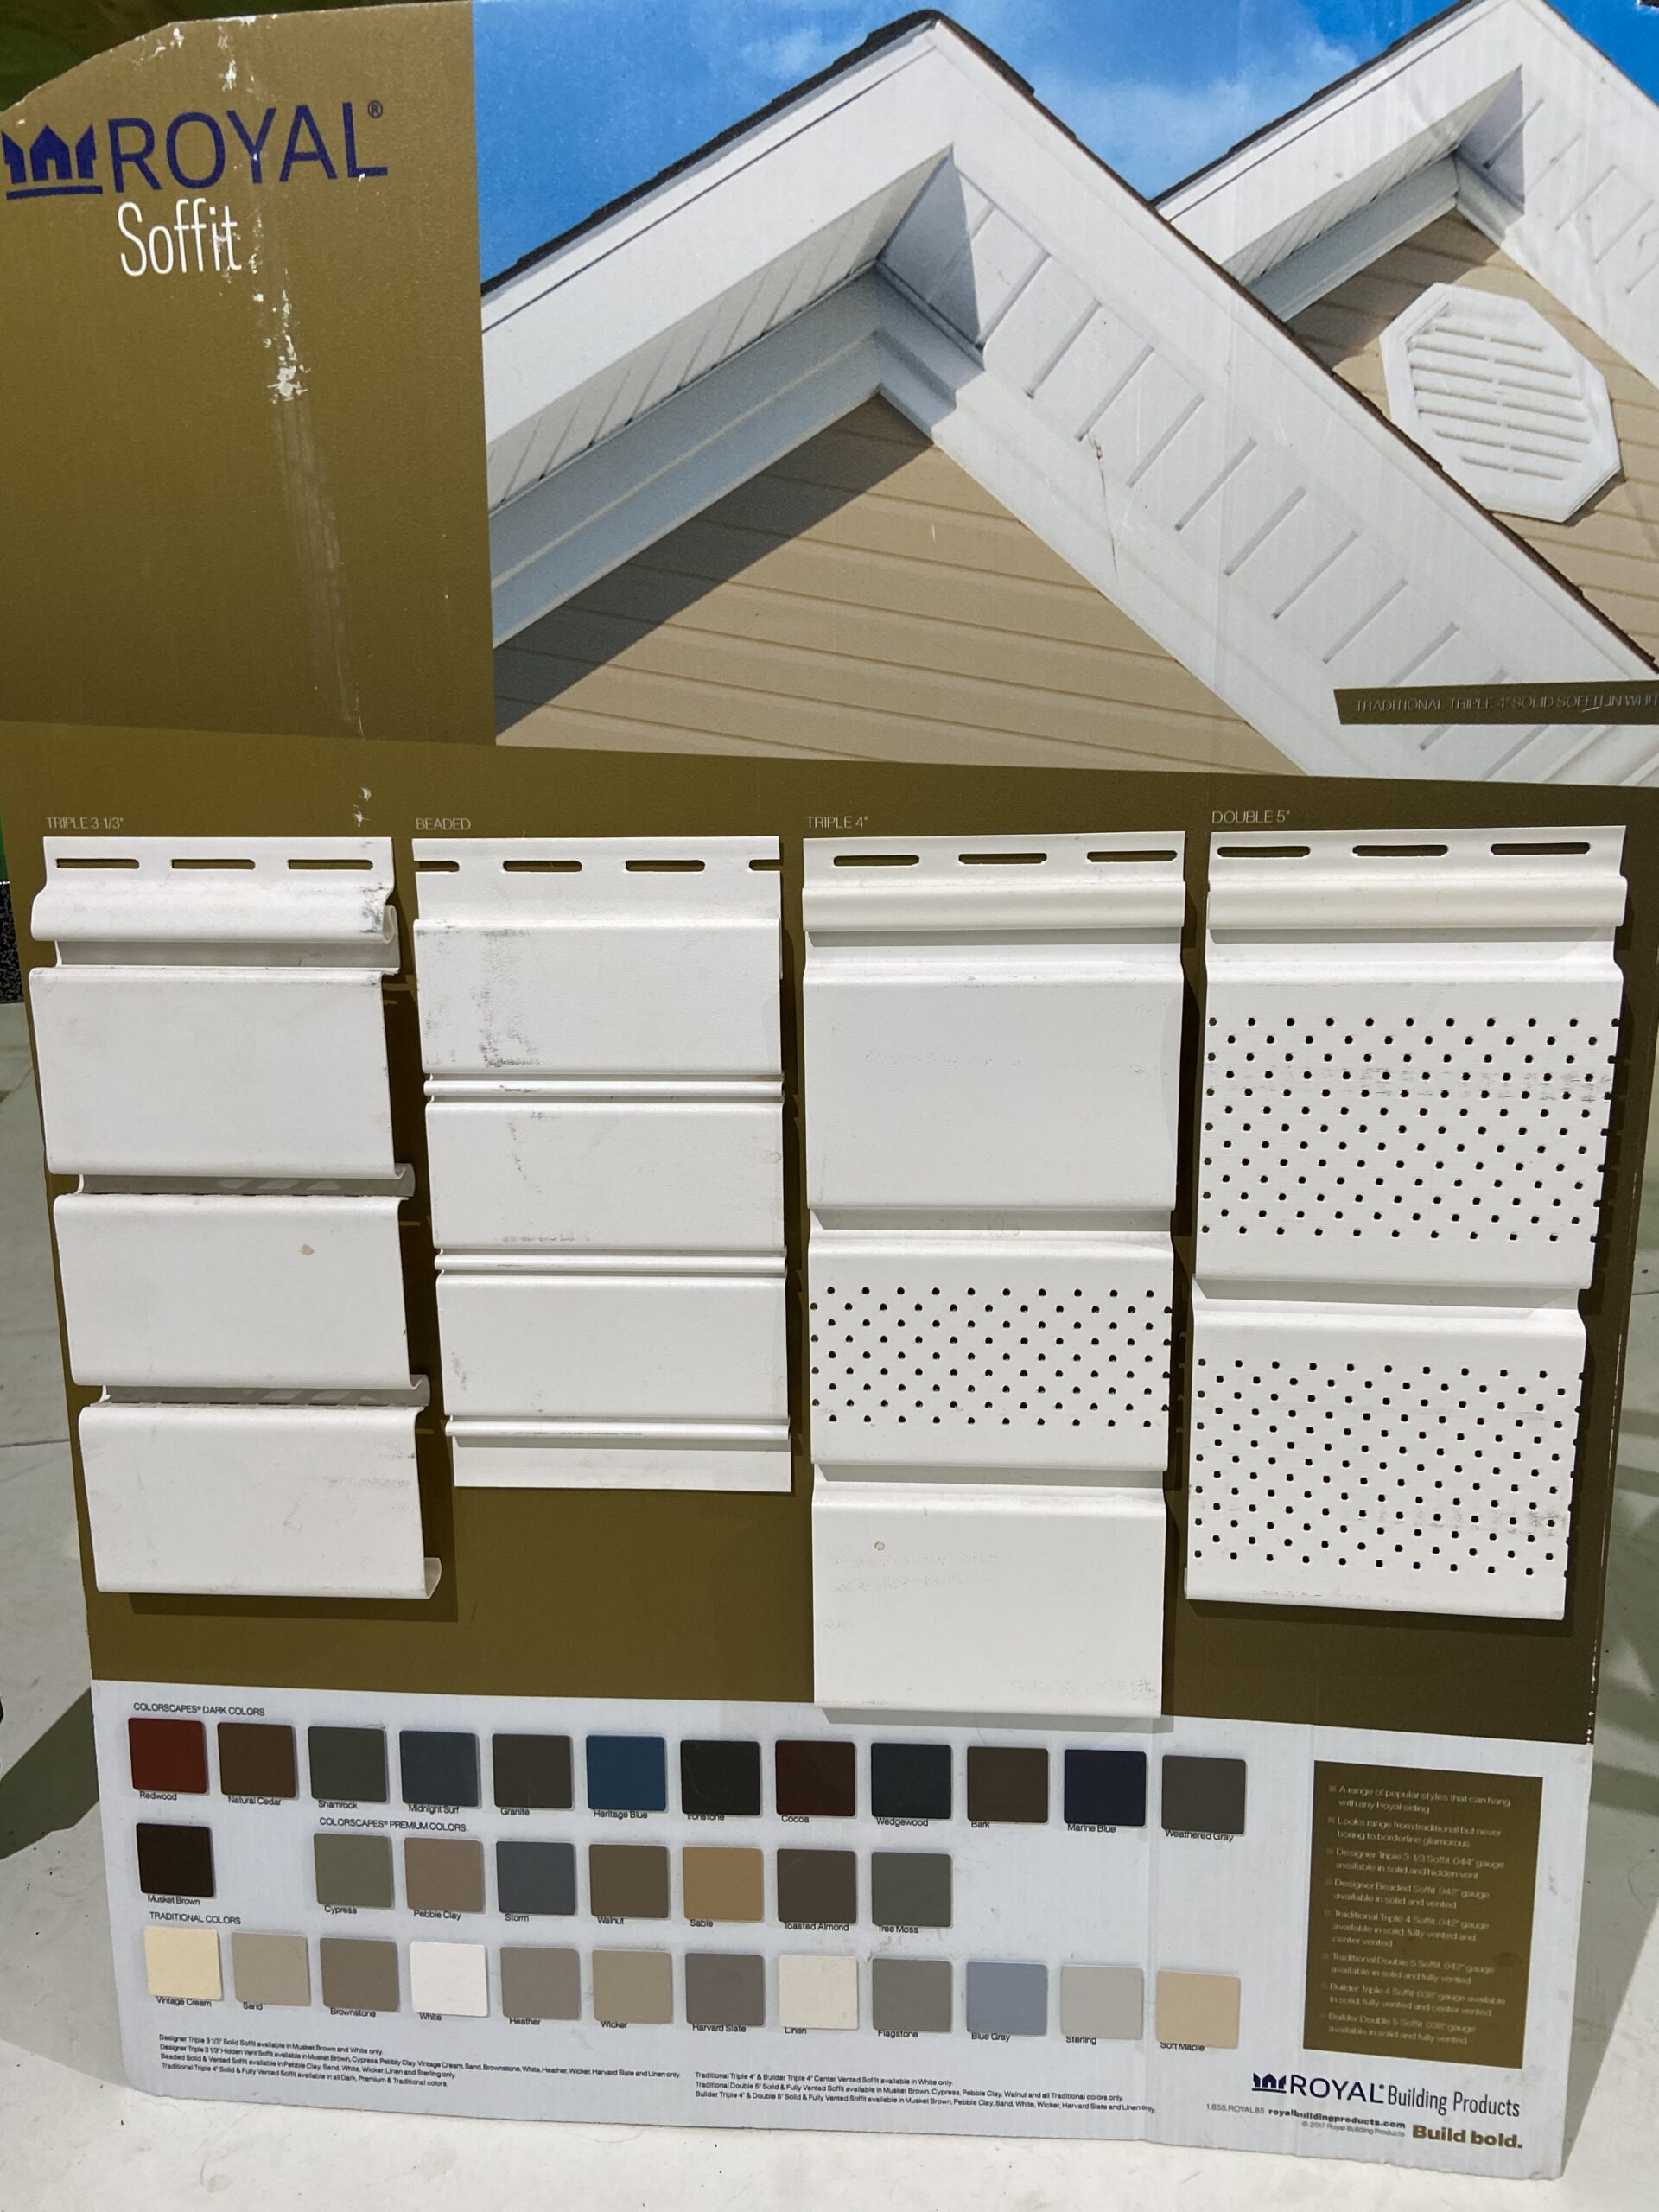 This is a picture of a vinyl soffit sample board